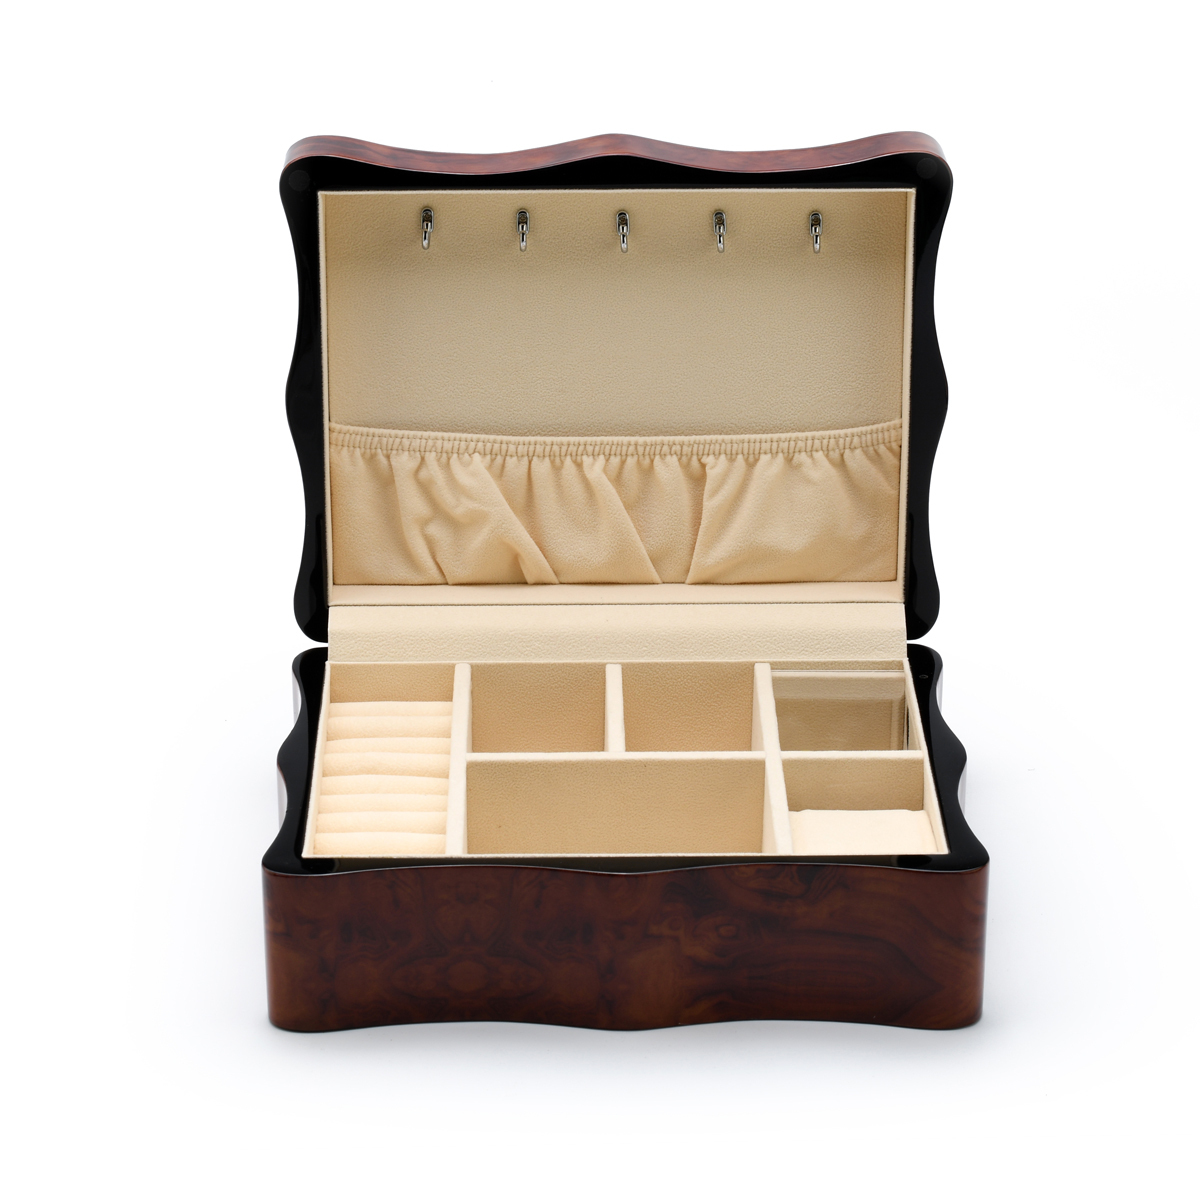 Gorgeous 30 Note Wood Stain Scalloped Shape Musical Jewelry Box